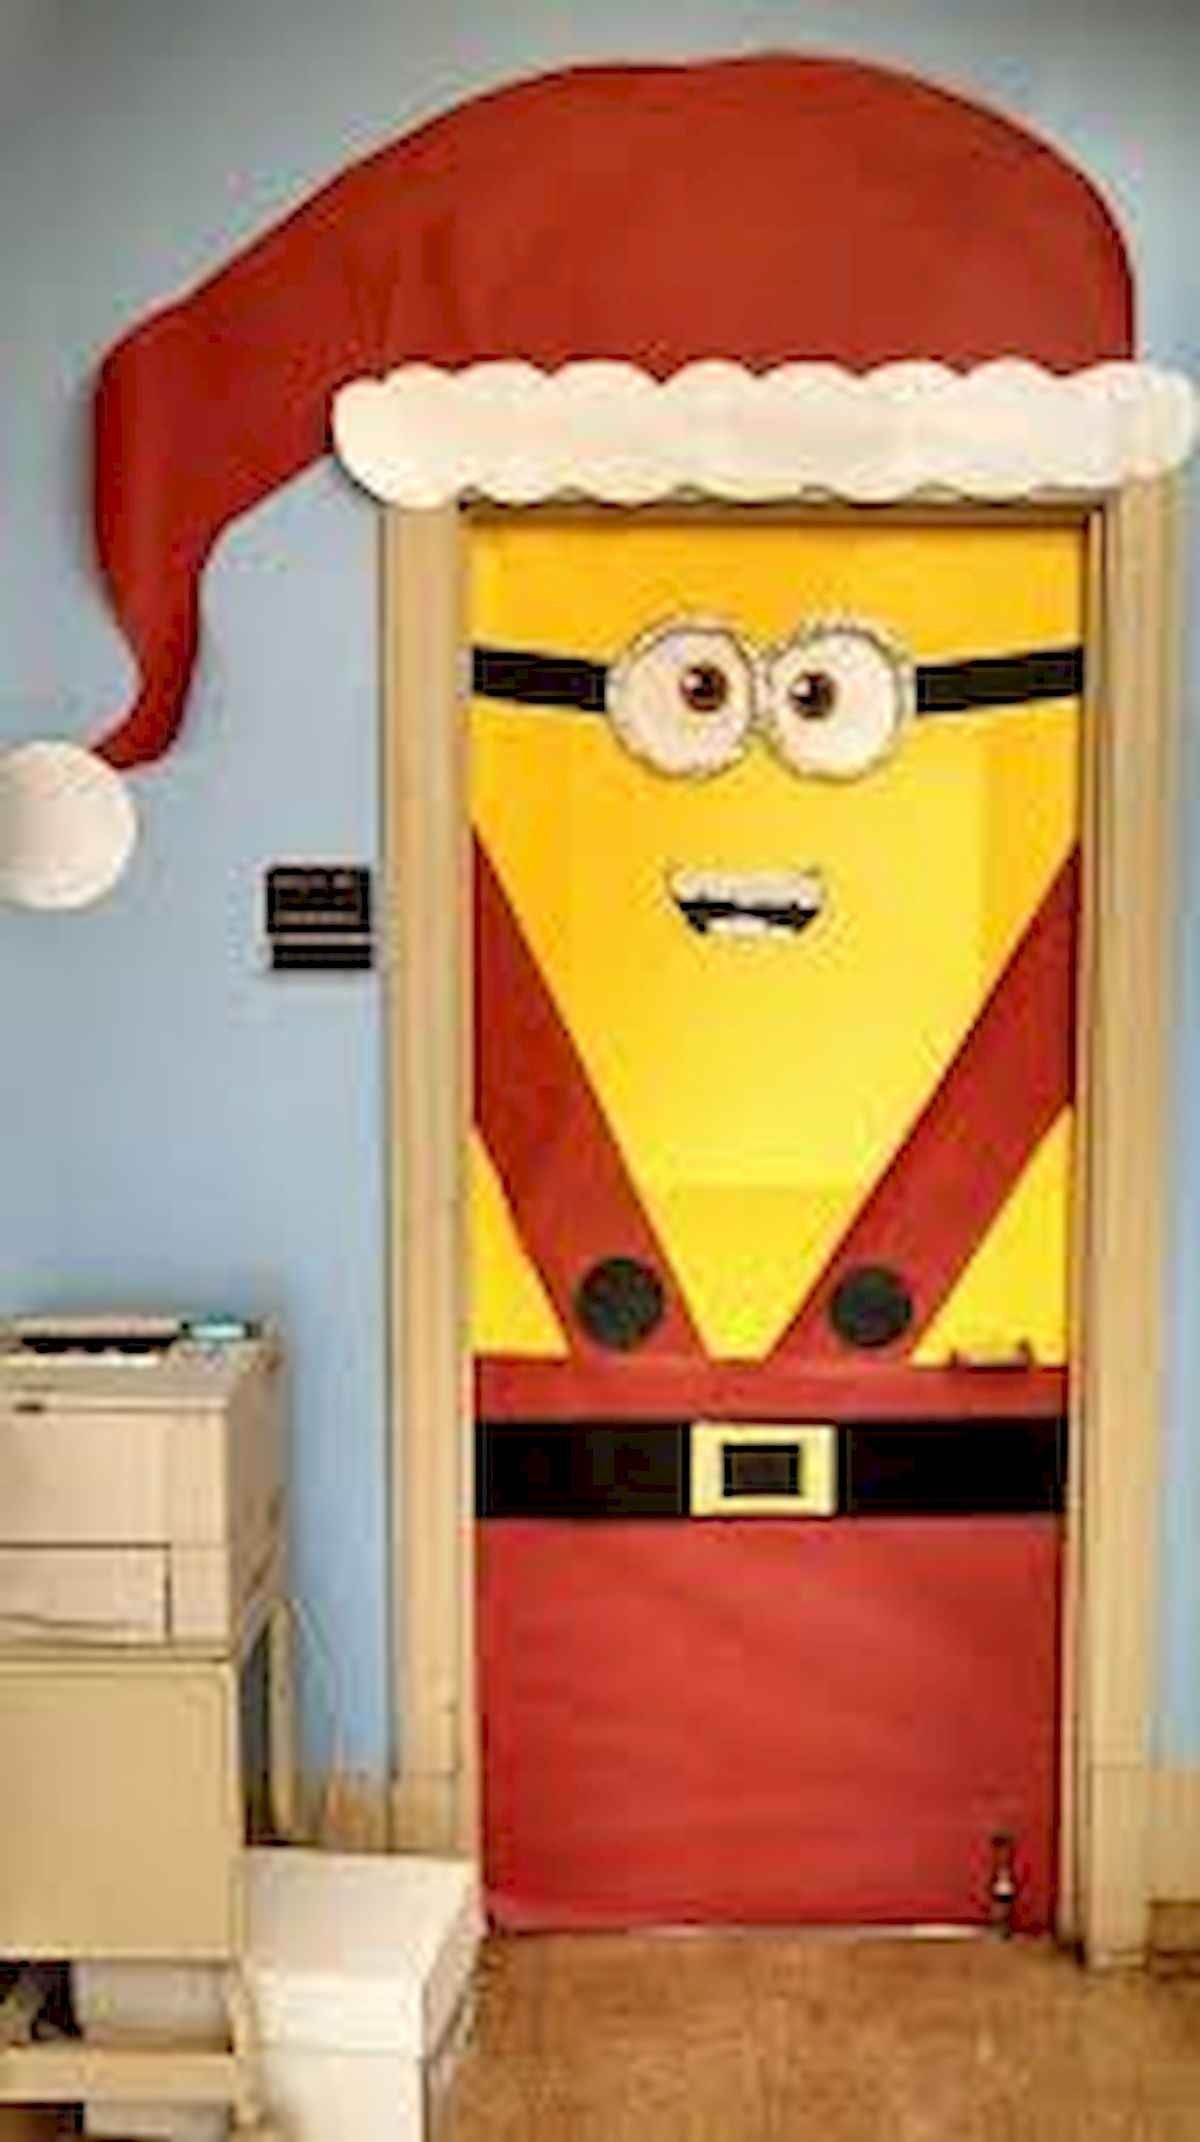 40 Simple DIY Christmas Door Decorations For Home And School #christmasdoordecorationsforschool